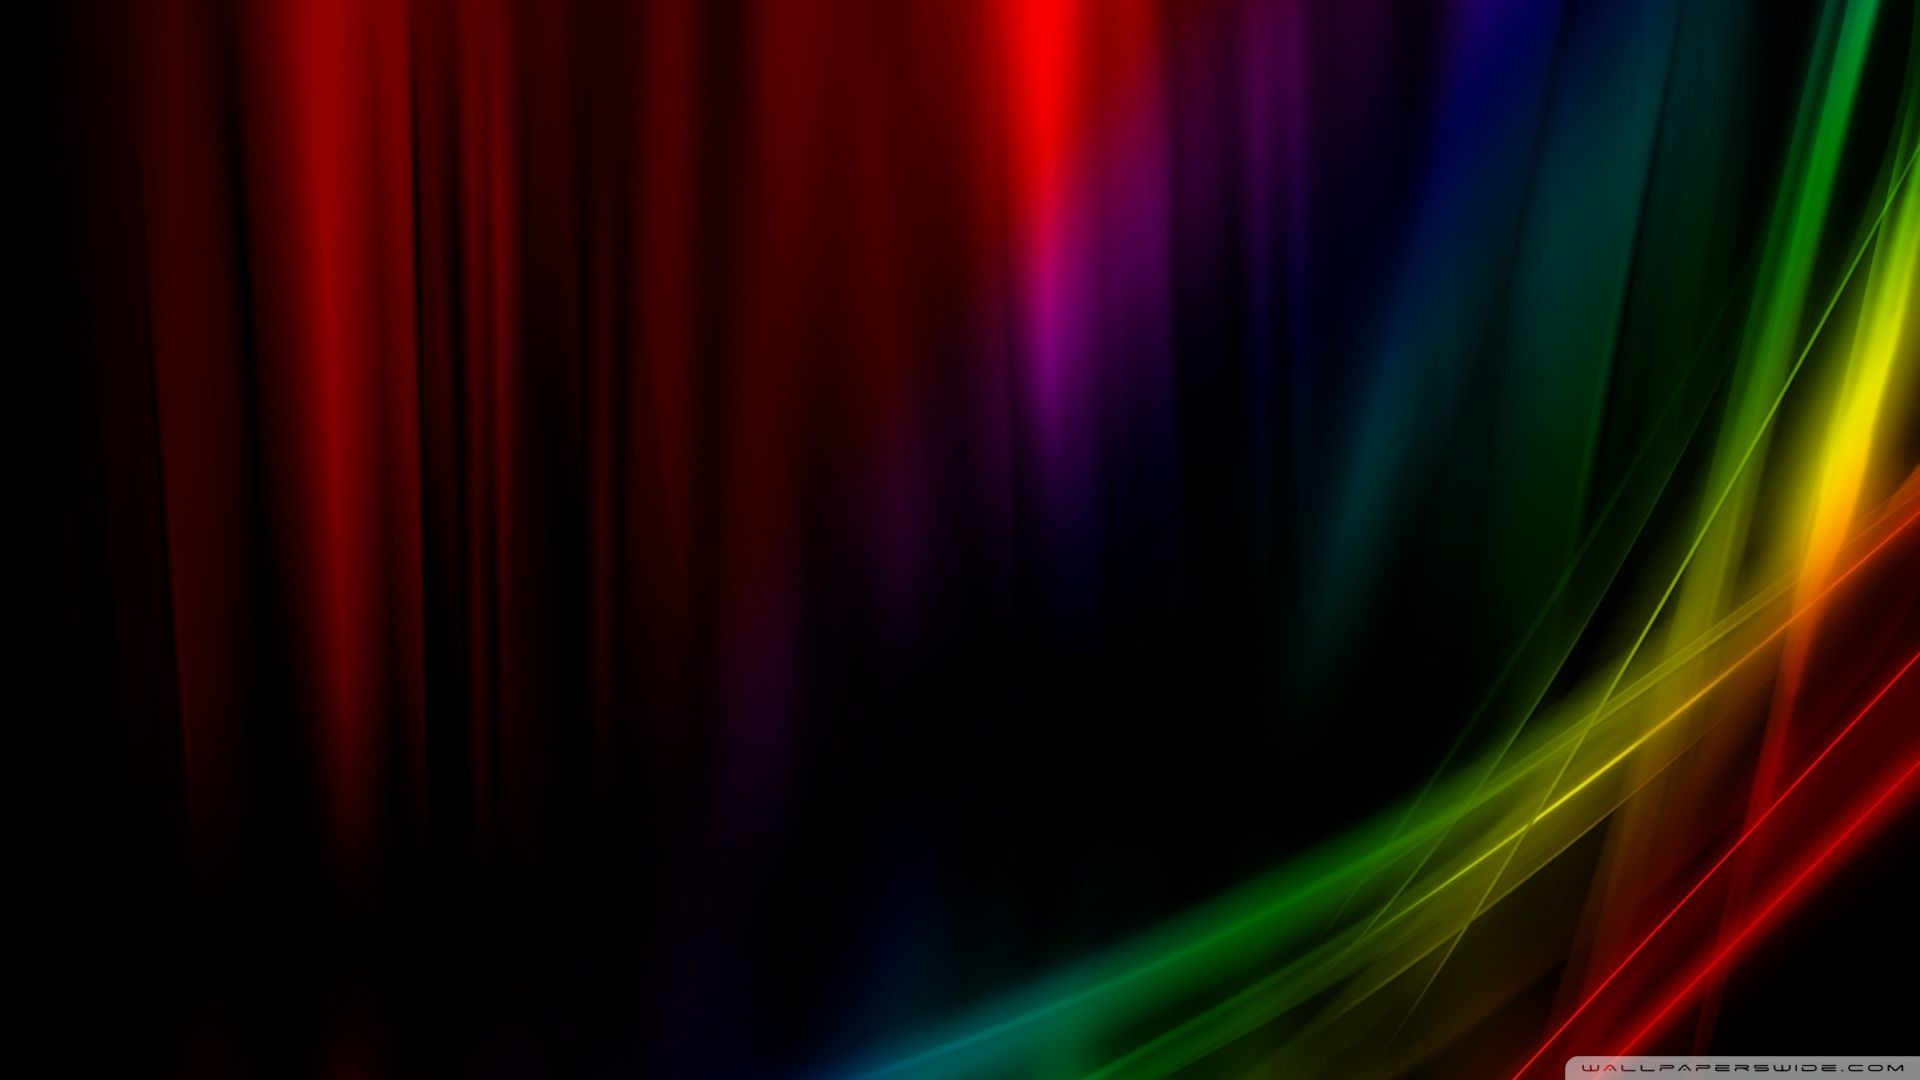 Res: 1920x1080, Find out: Black Rainbow HD Wallpaper wallpaper on http://hdpicorner.com